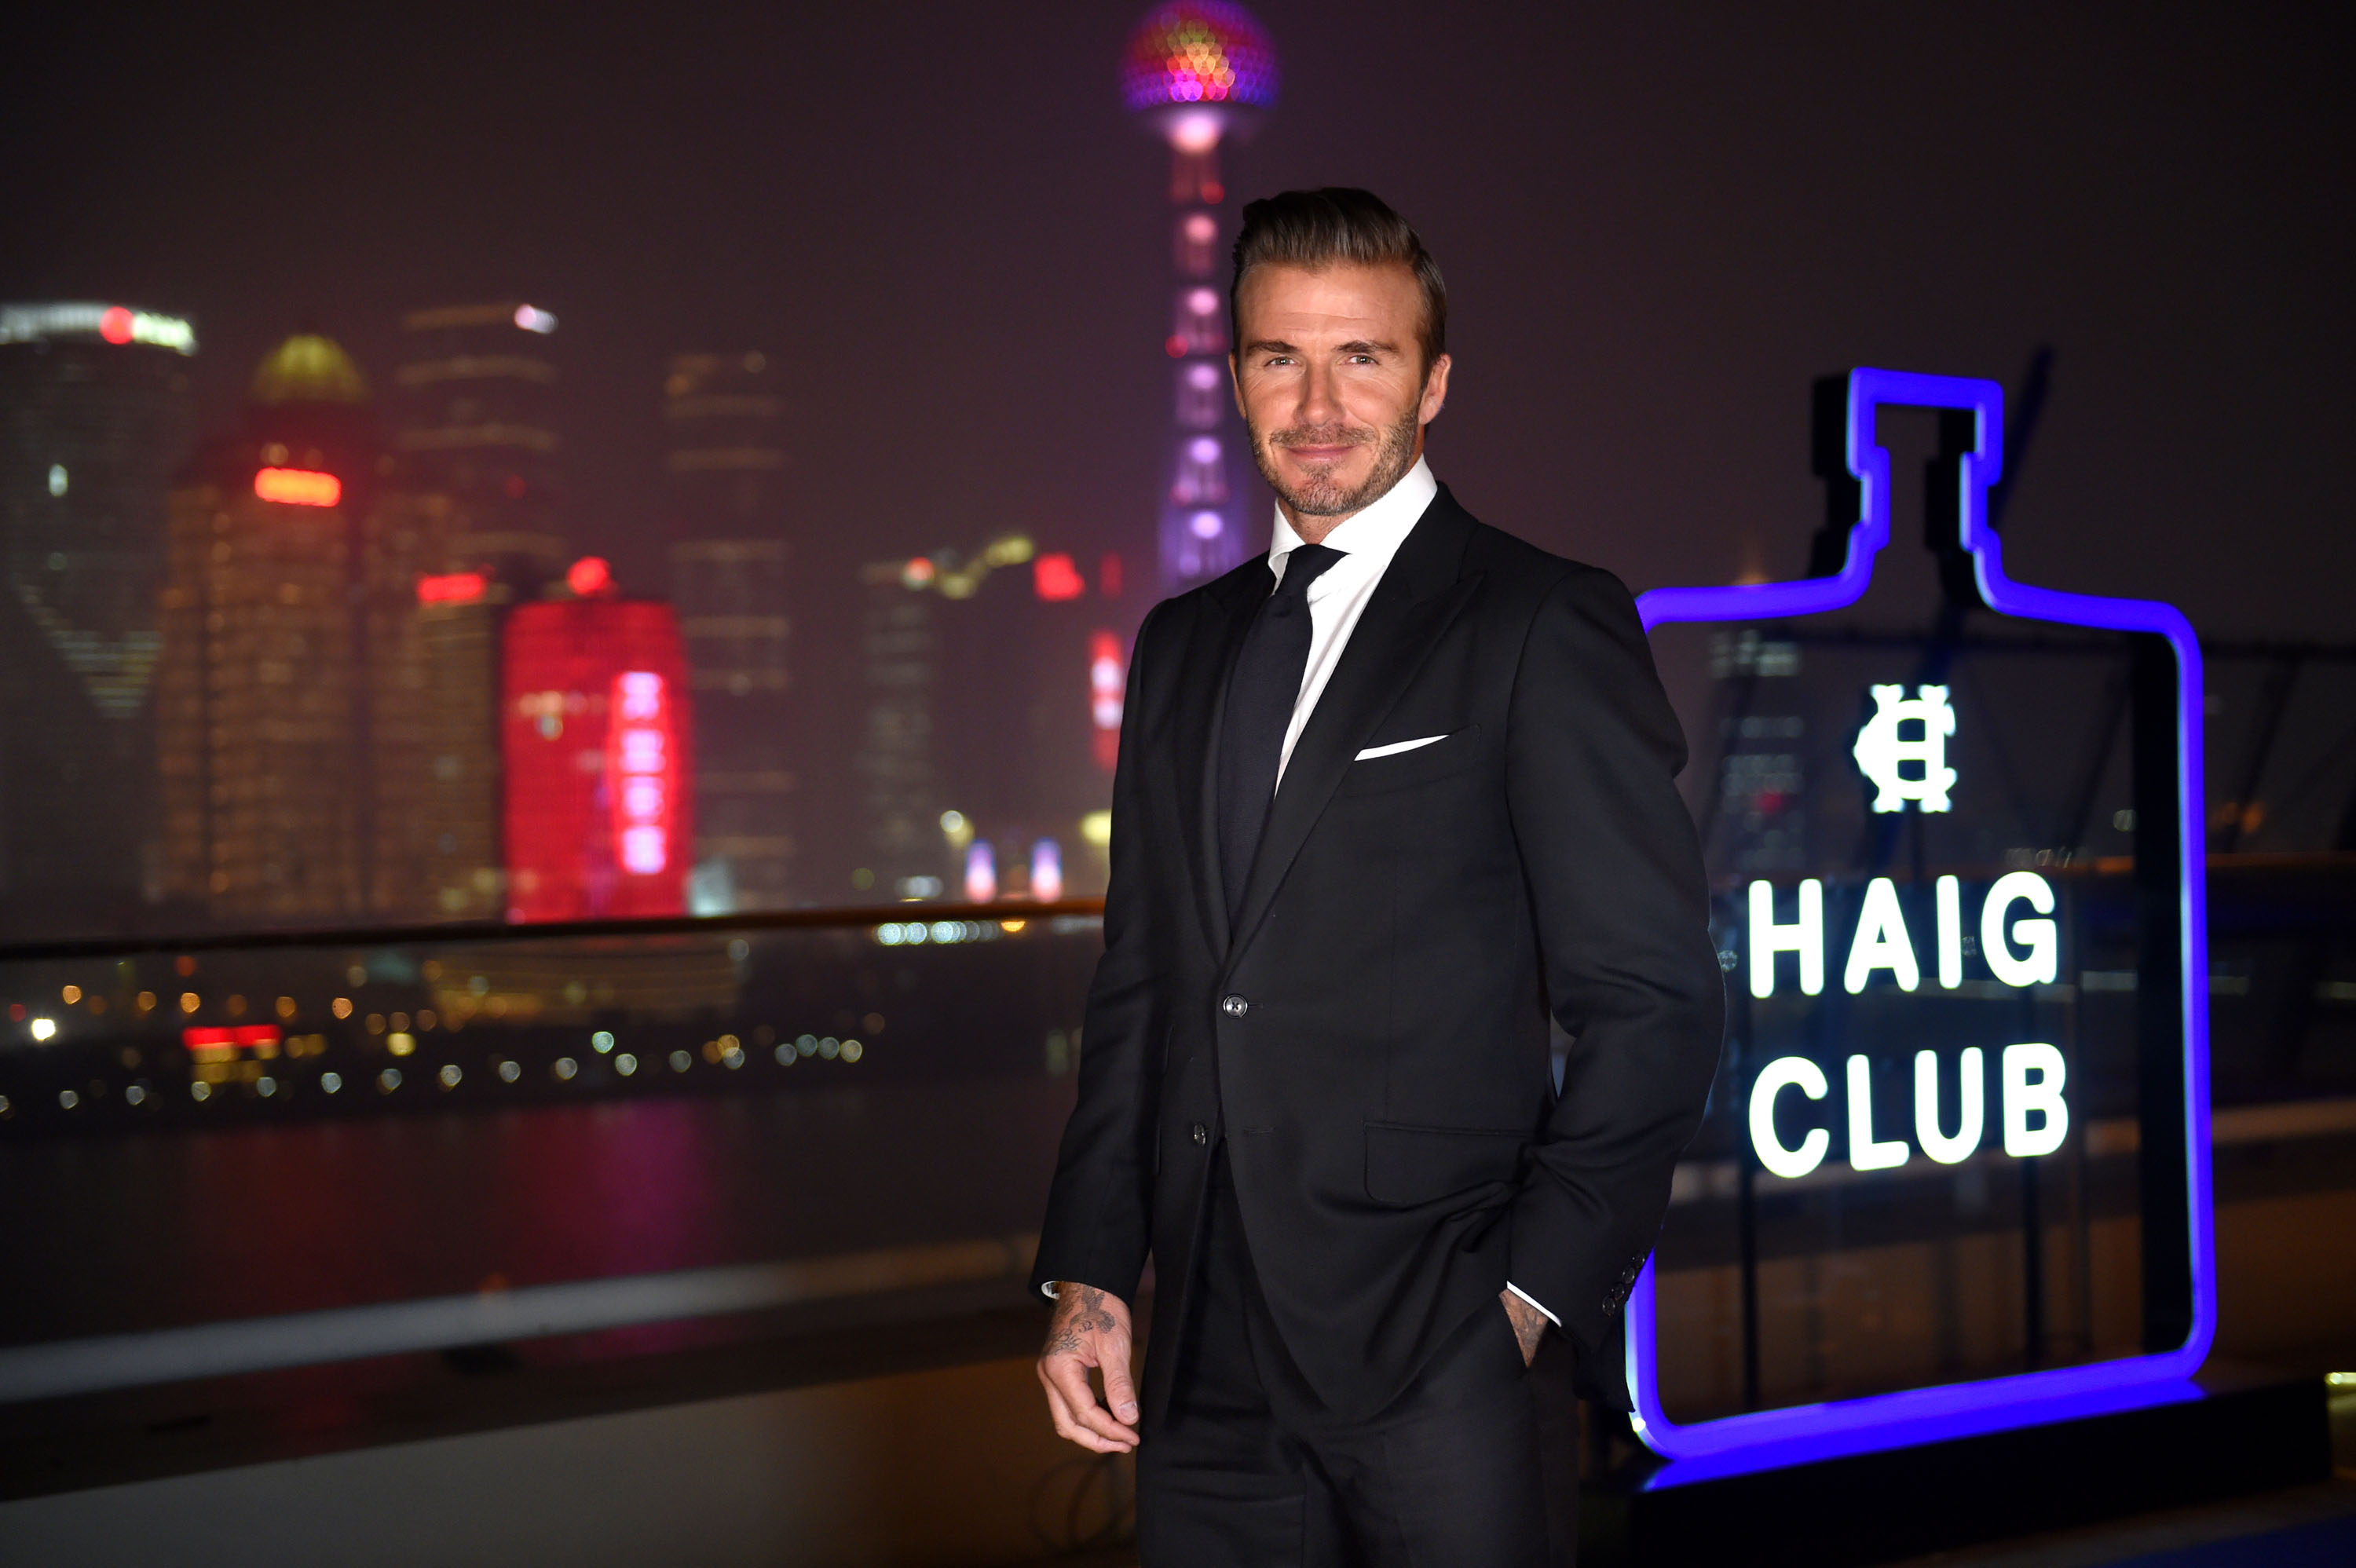 Image 1- David Beckham at HAIG CLUB™ Shanghai